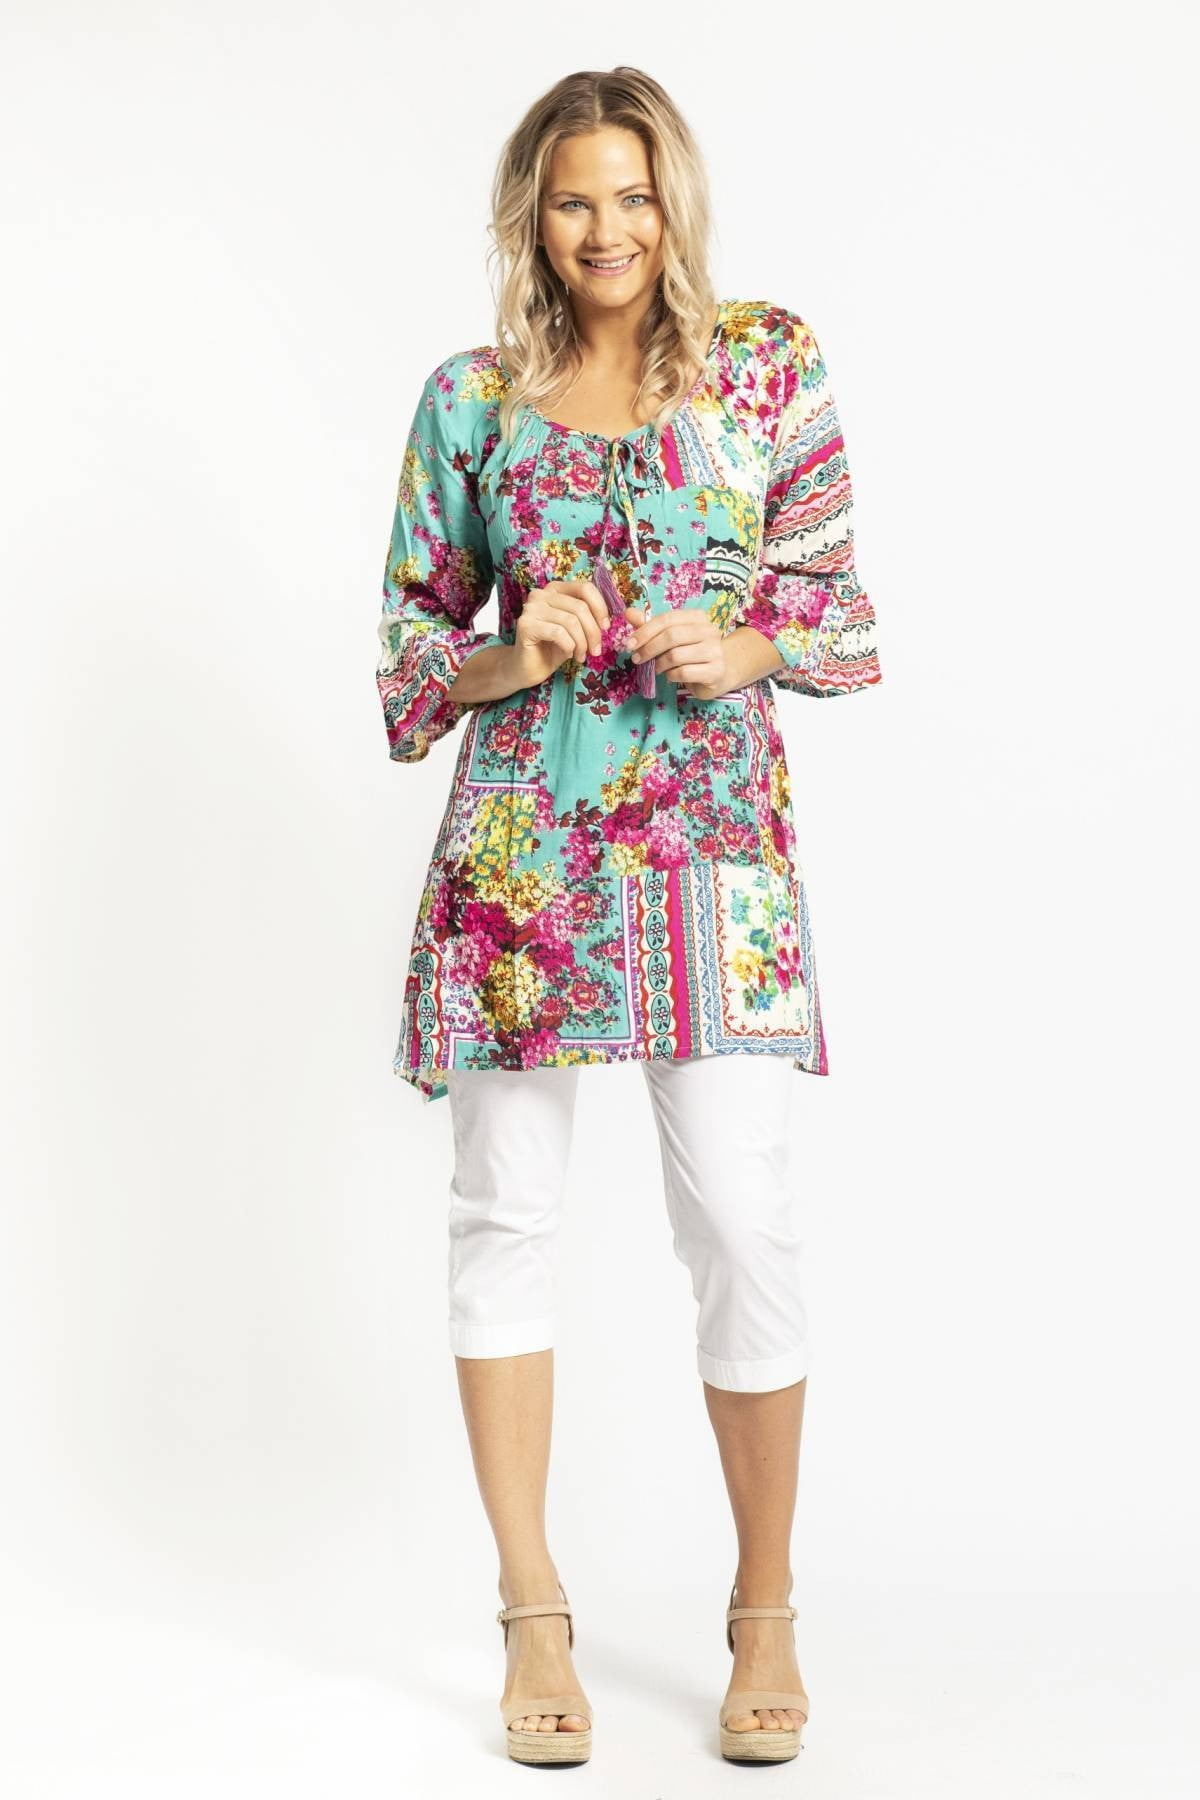 Bora Bora Dwij Tunic Top Blouse | I Love Tunics | Tunic Tops | Tunic | Tunic Dresses  | womens clothing online